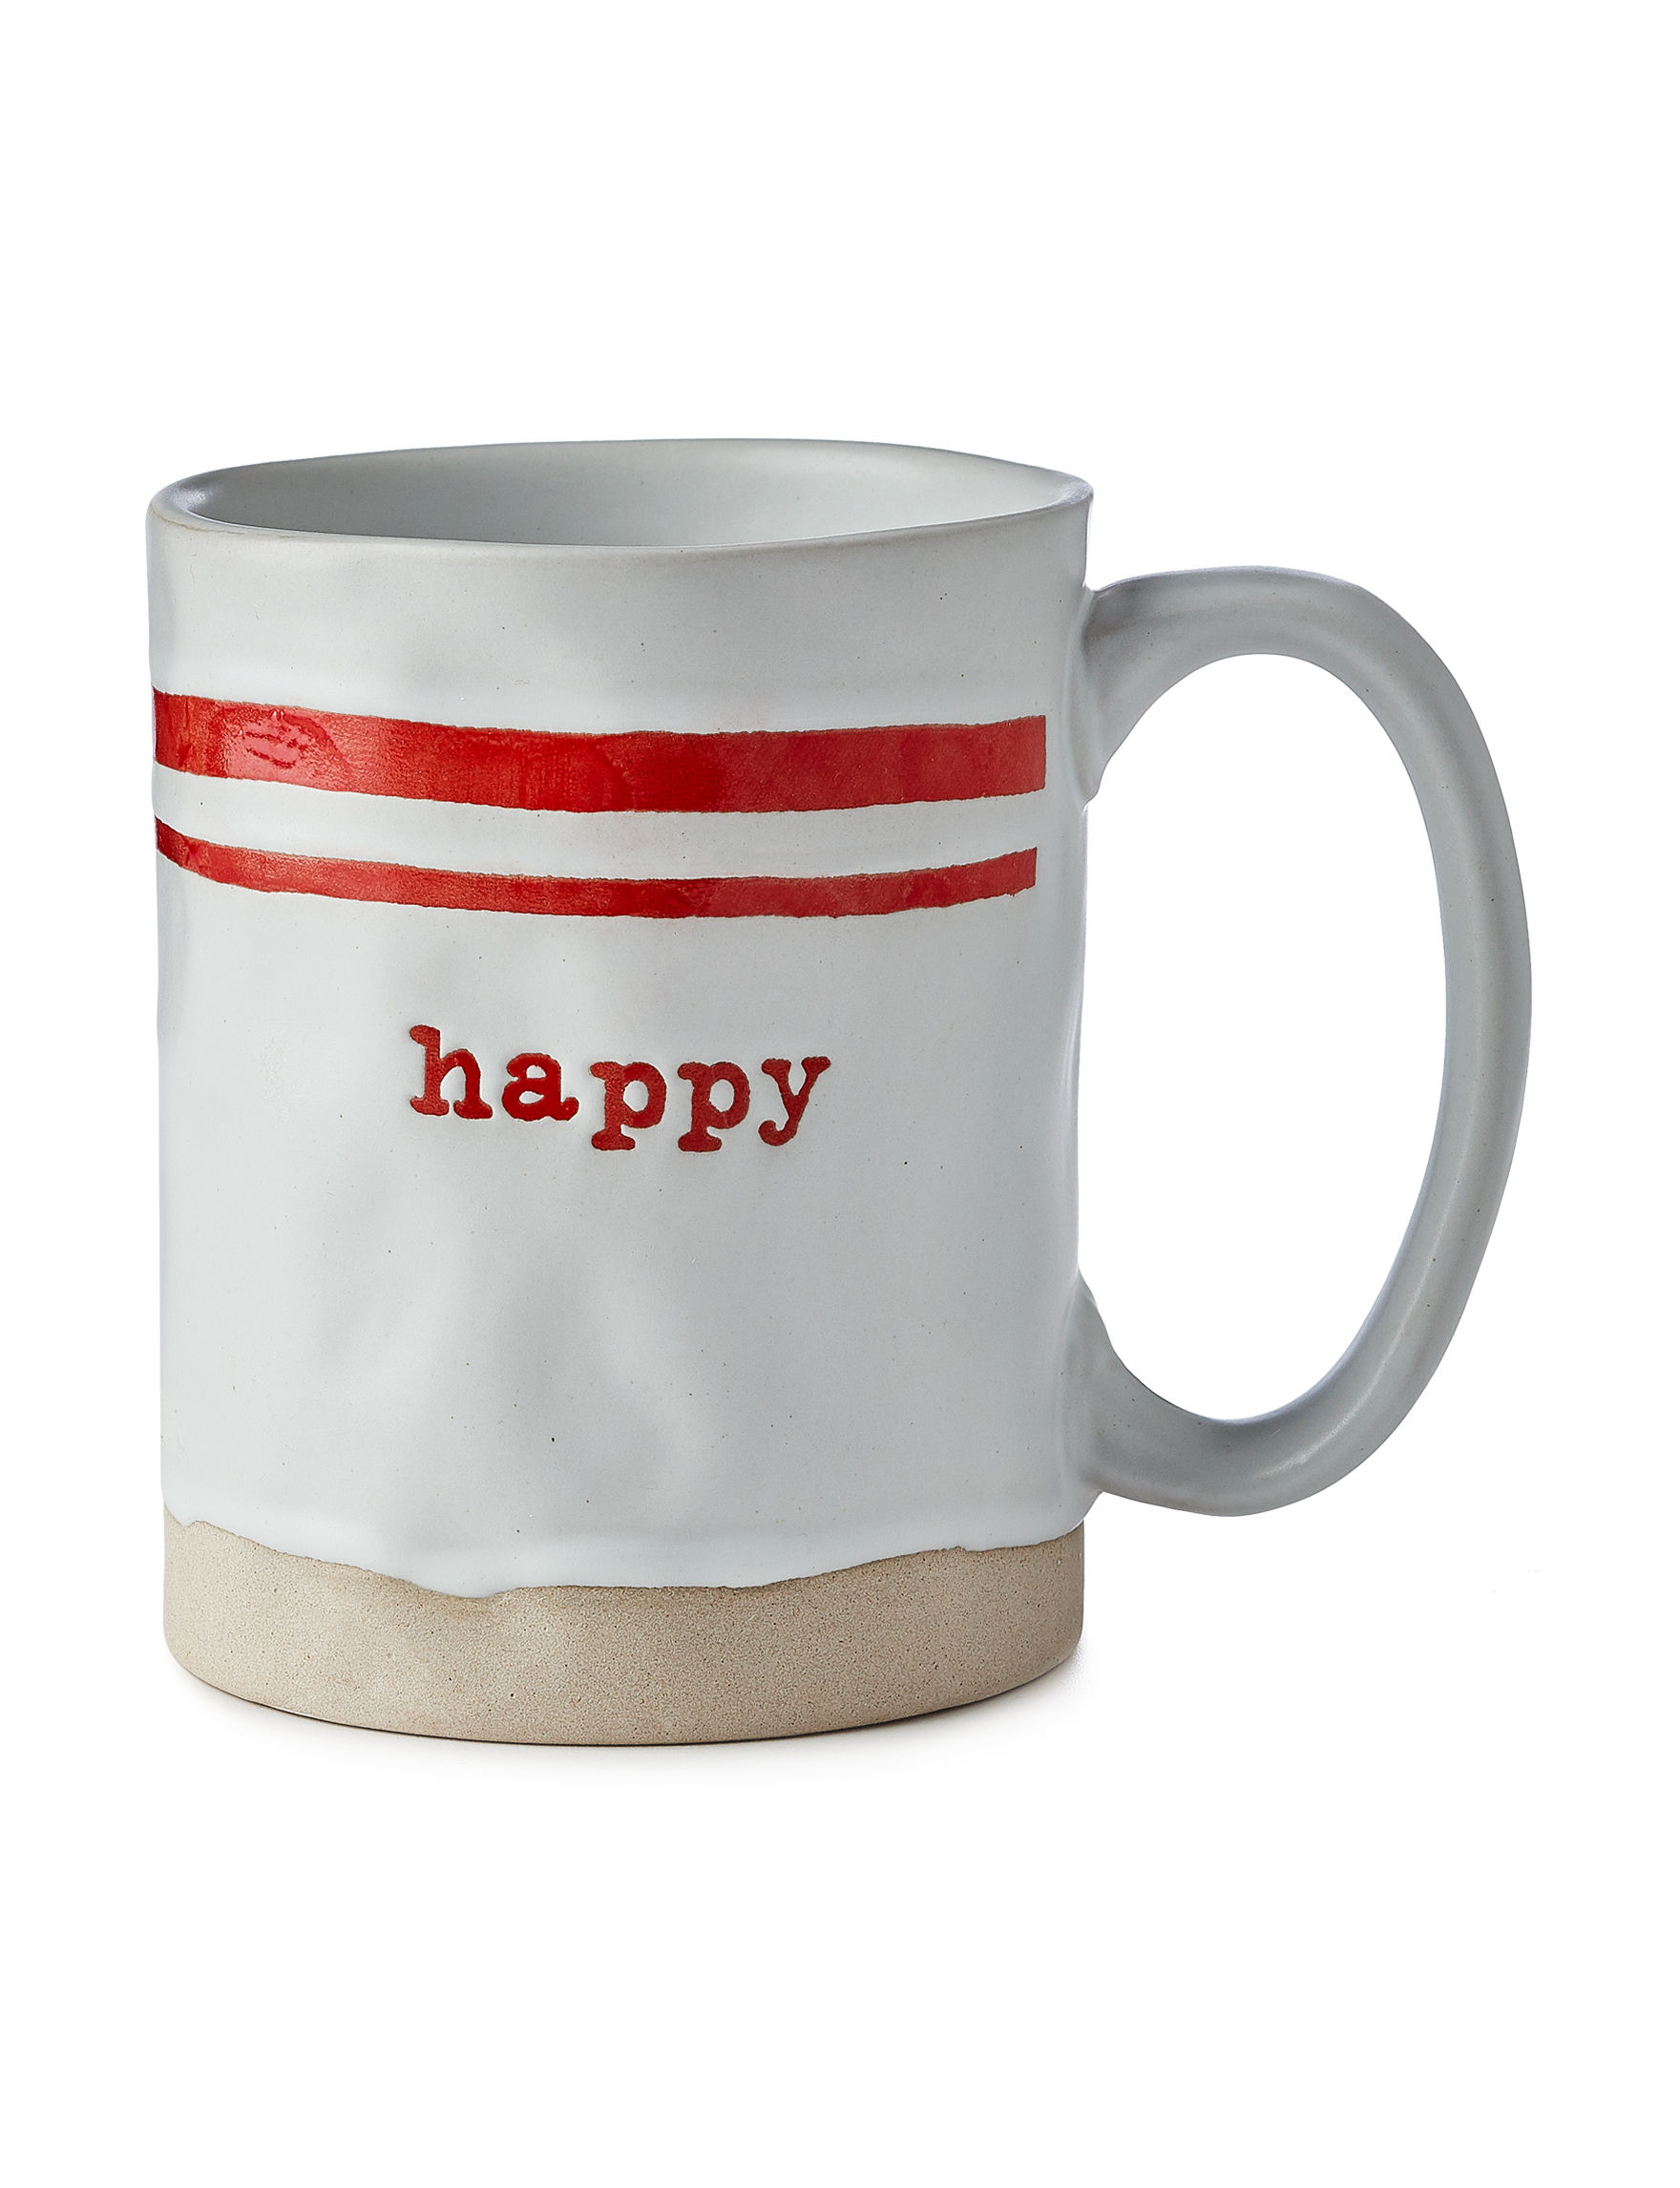 Enchante White / Red Mugs Drinkware